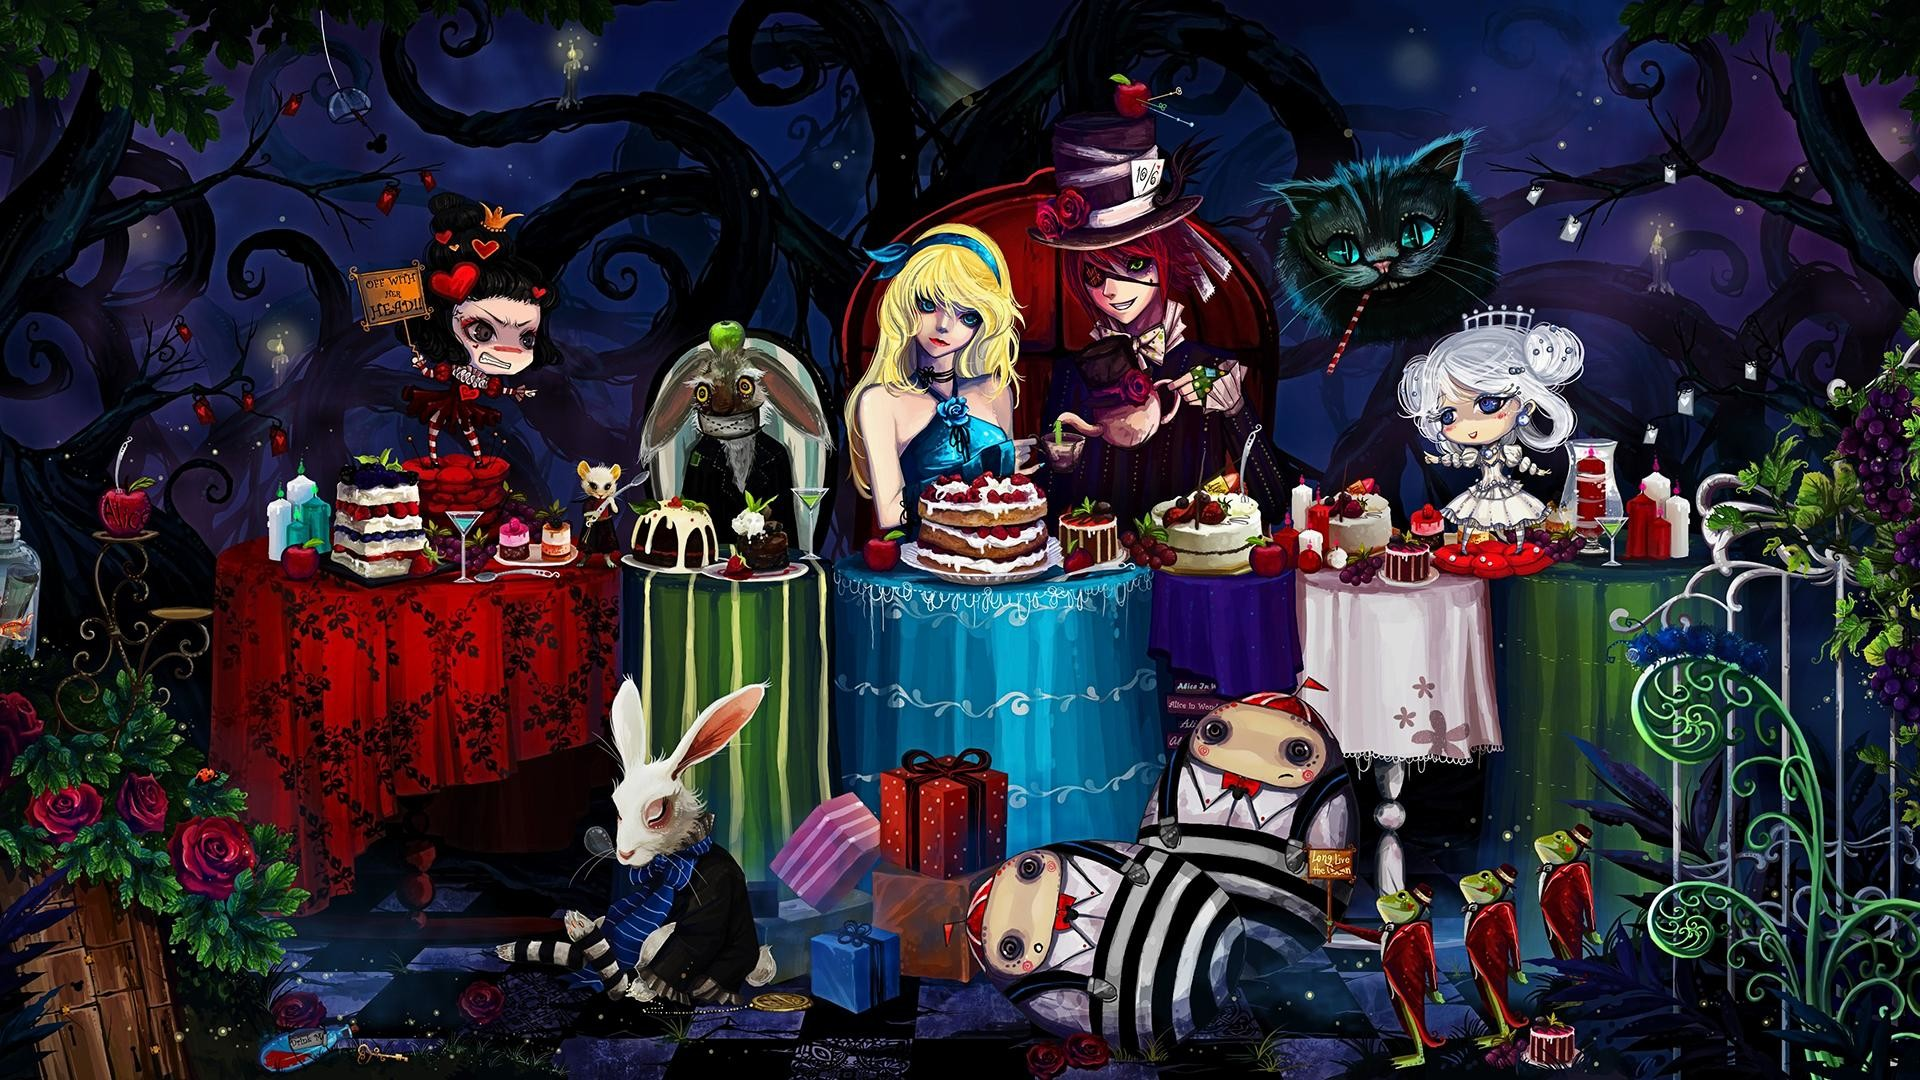 1920x1080 wallpaper.wiki-Free-Download-Alice-in-Wonderland-Wallpaper-